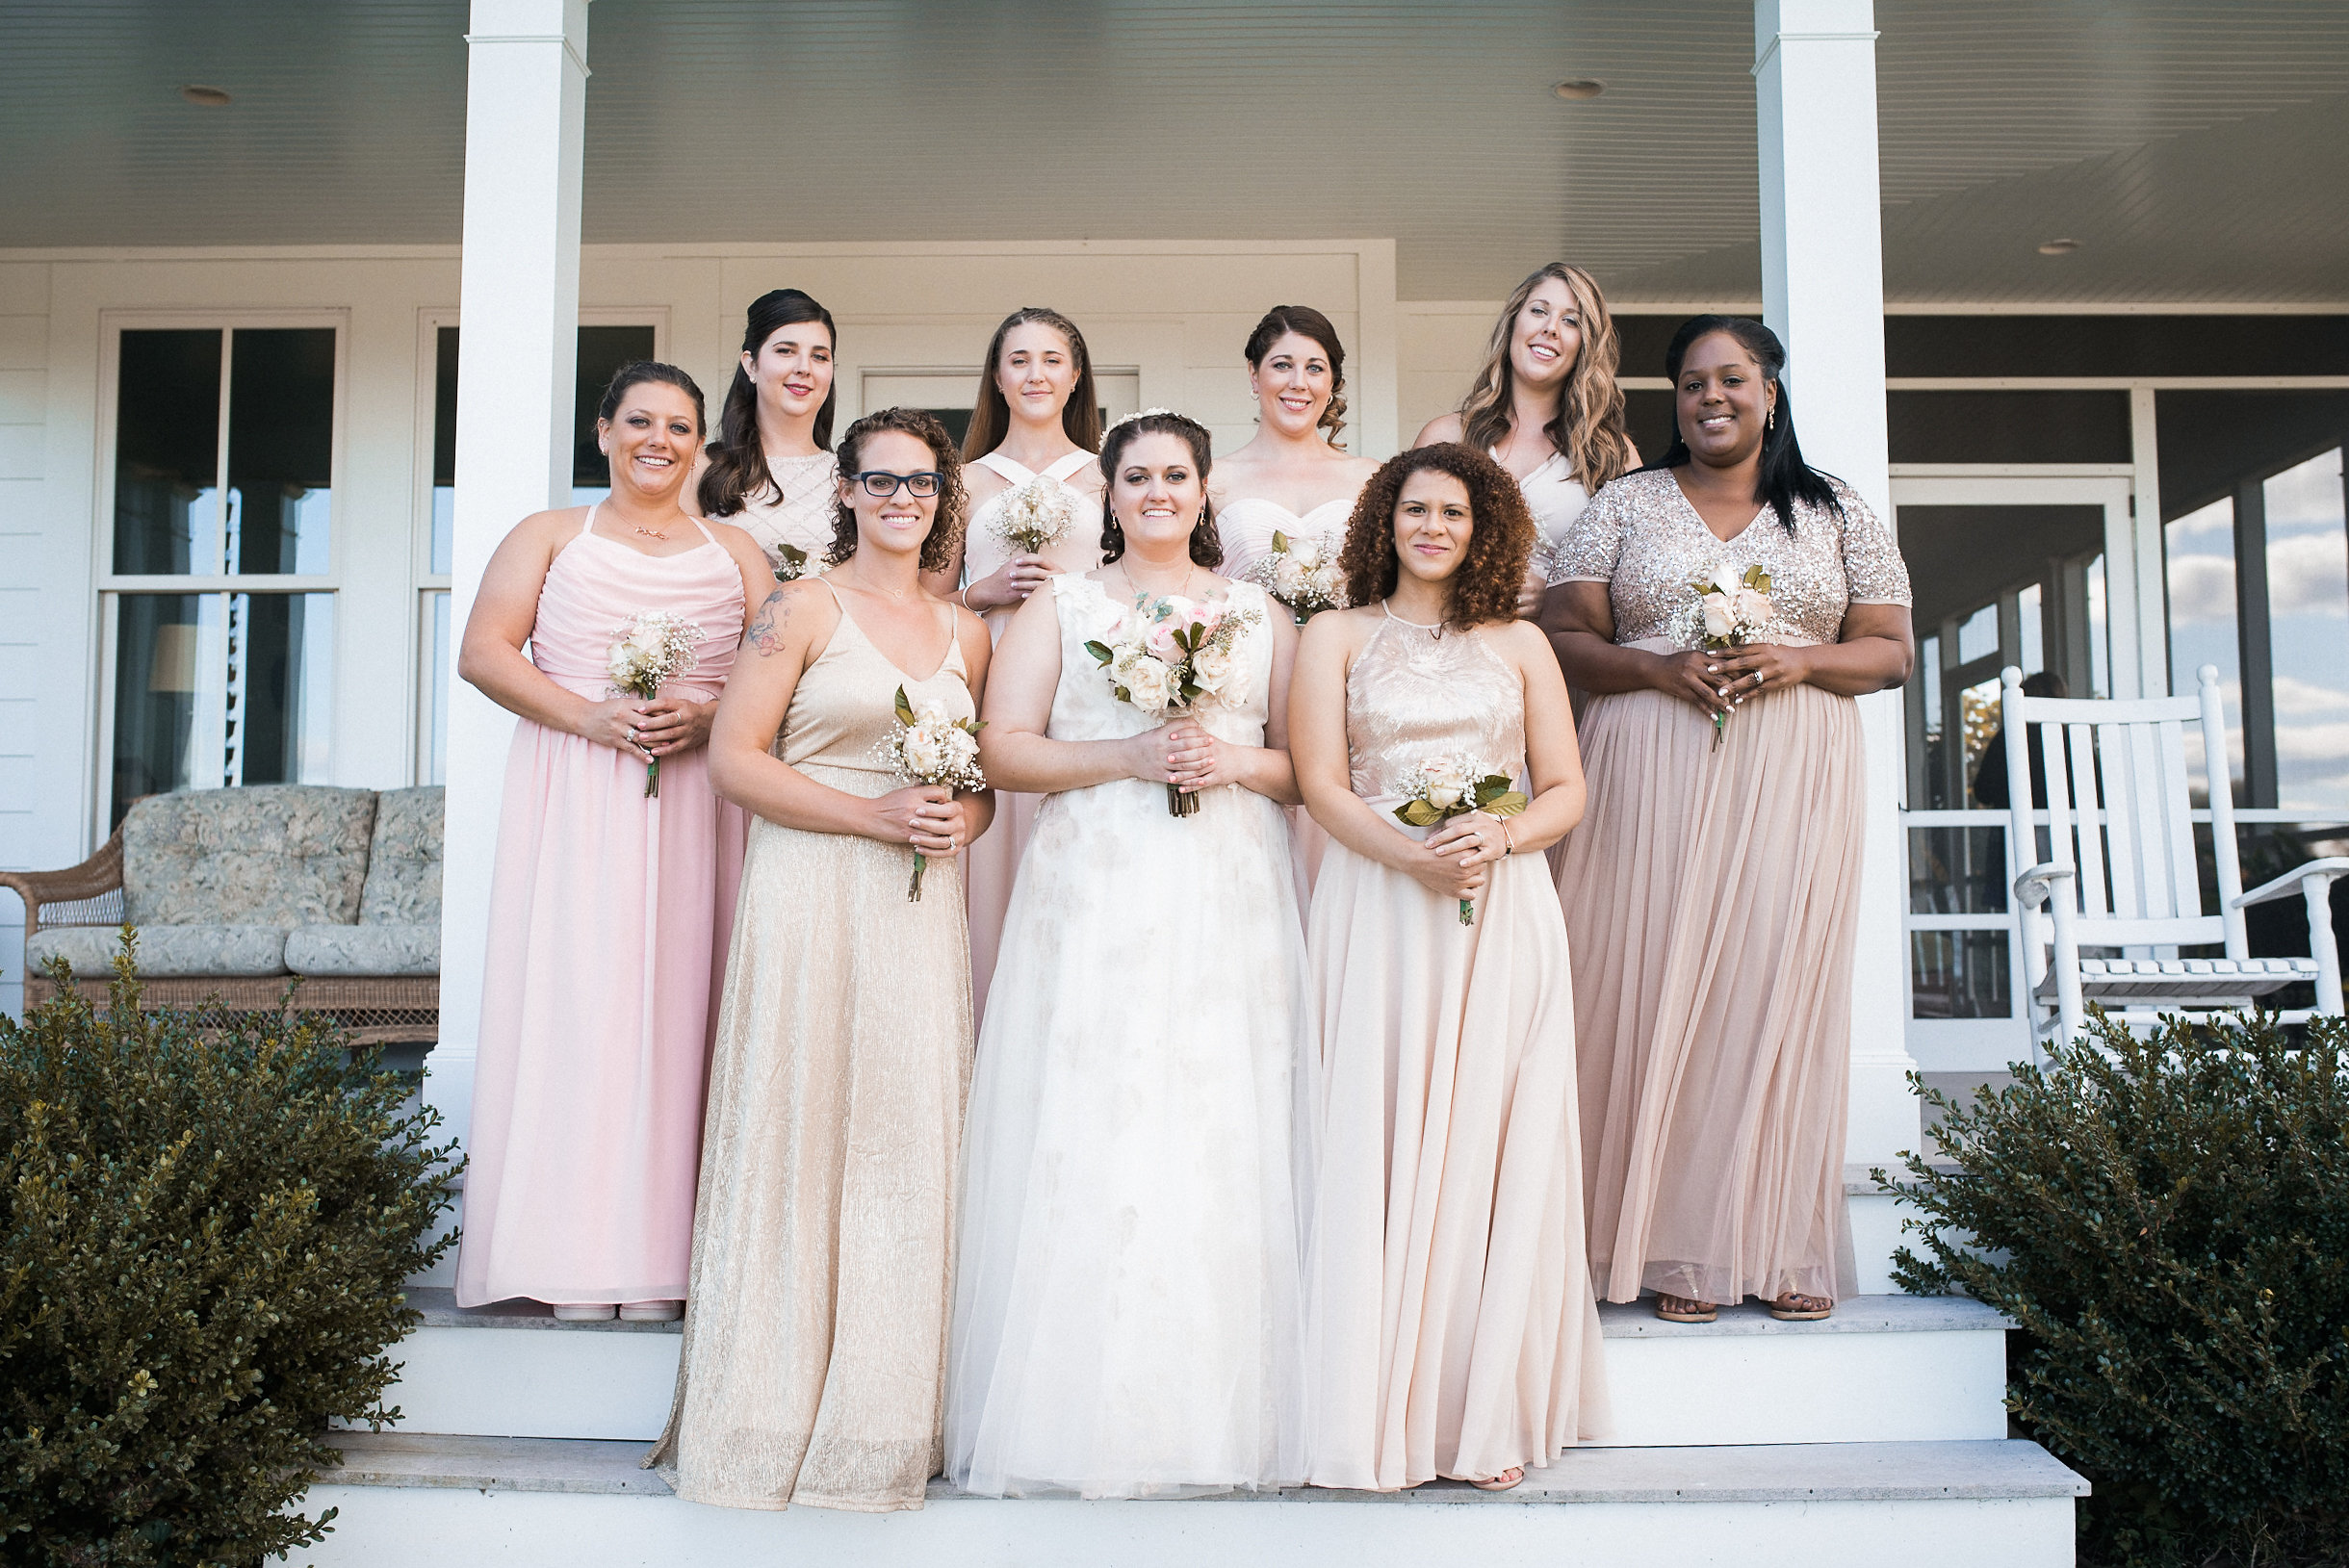 Bridal party posing on steps